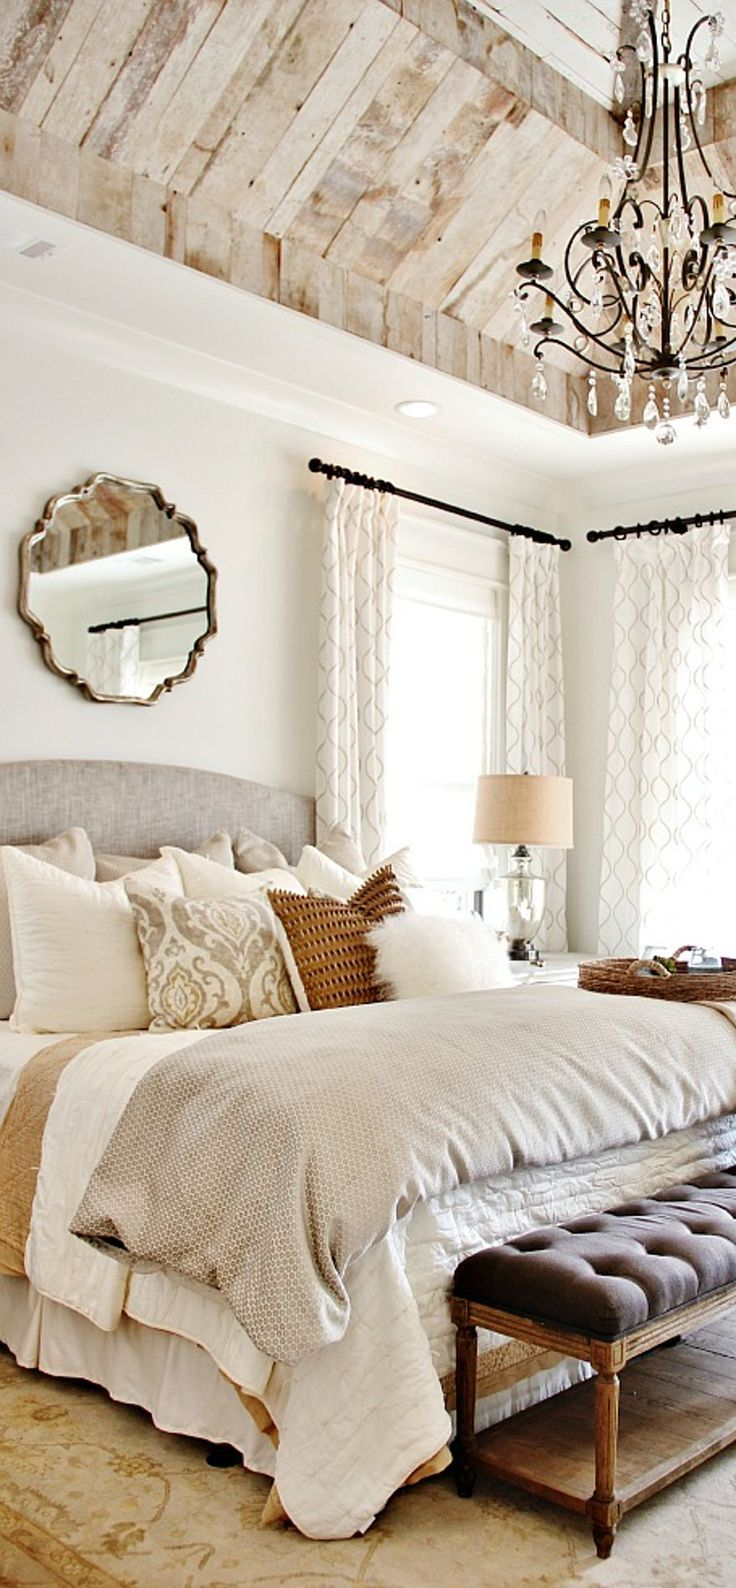 French Country Decorating Ideas With Images Modern Rustic